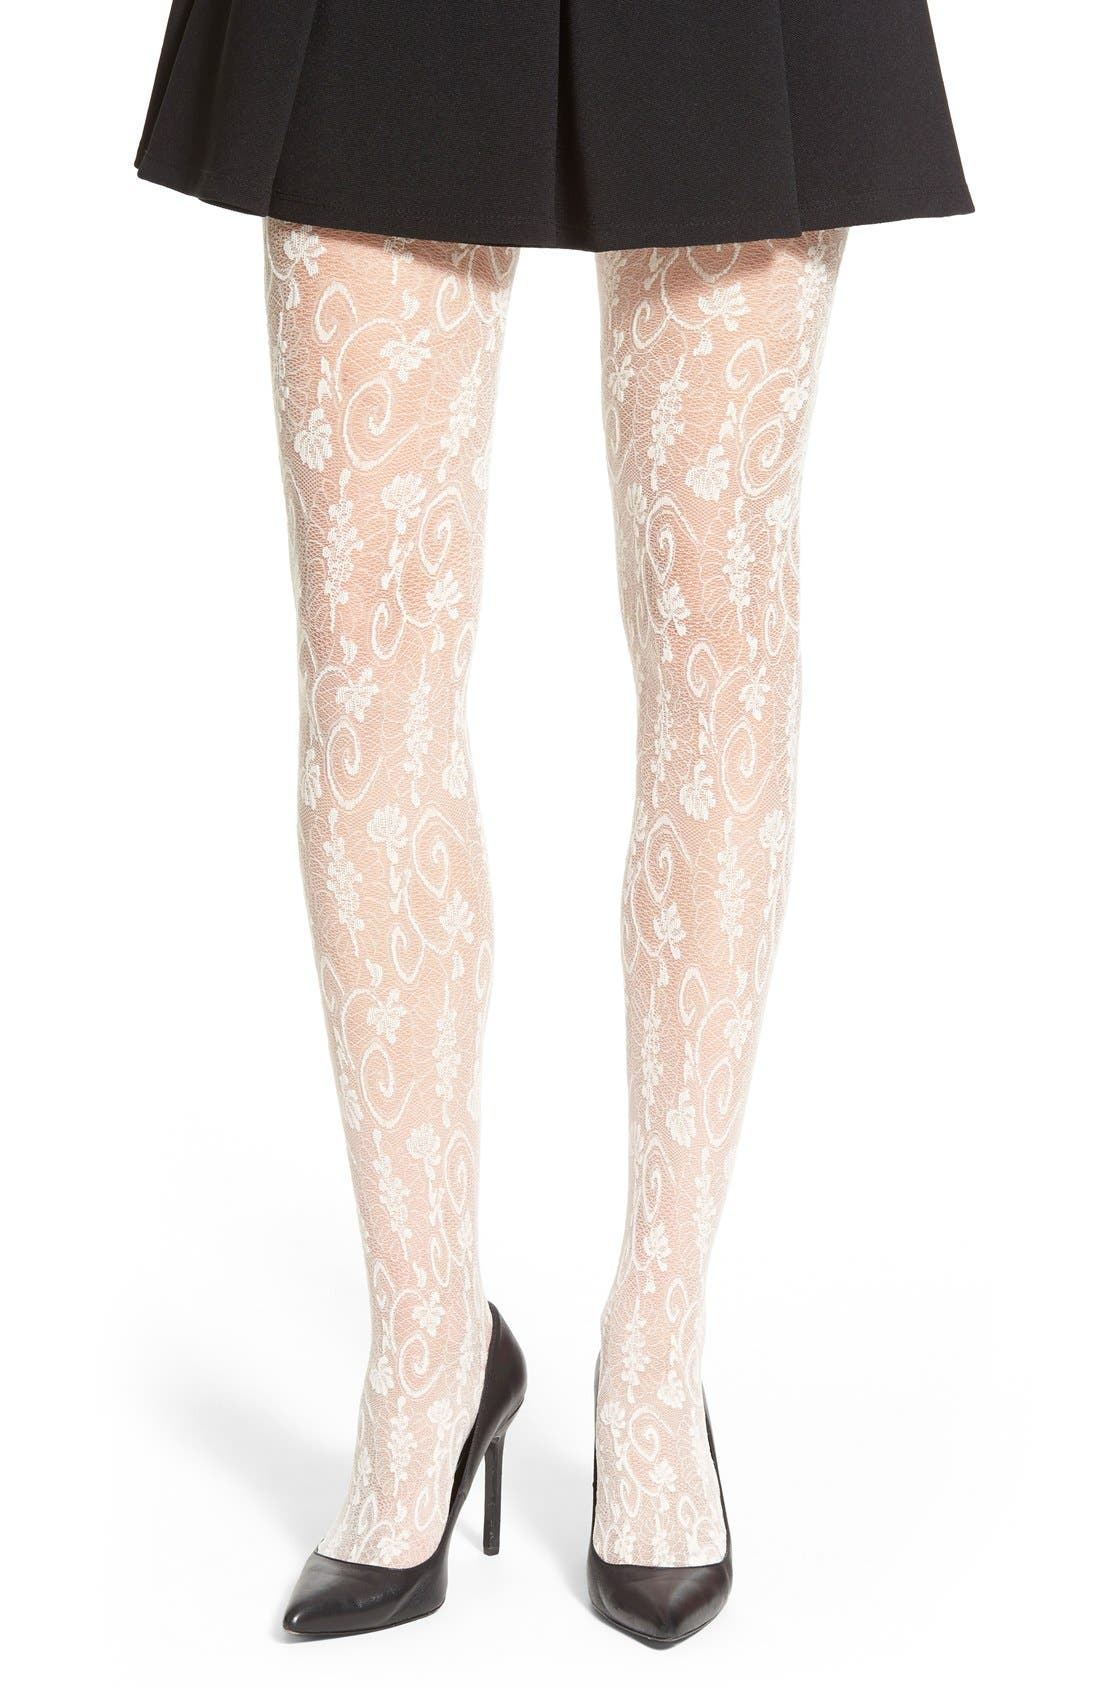 'Estella' Floral Lace Tights,                             Main thumbnail 1, color,                             Wool